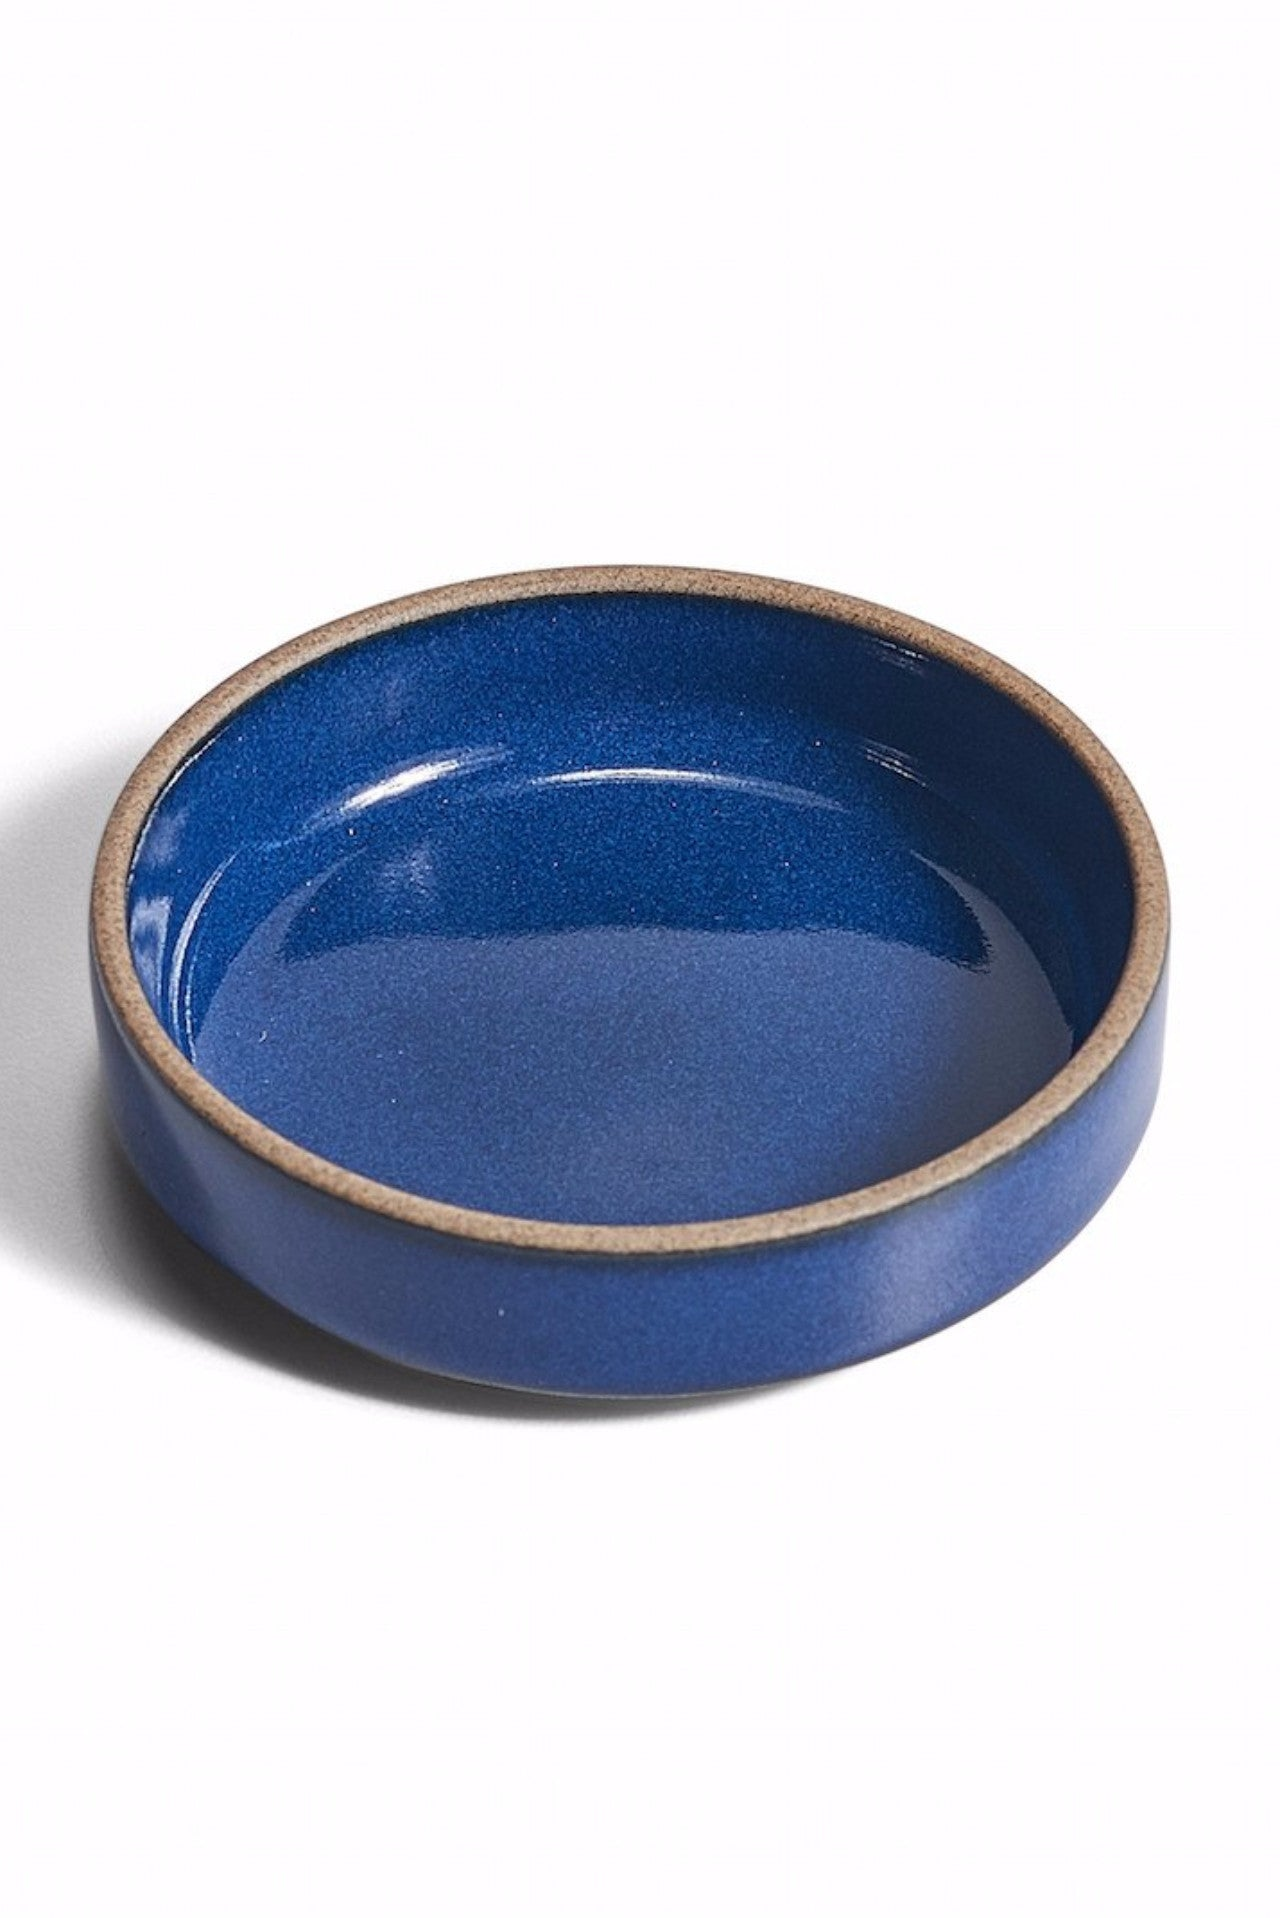 HASAMI Porcelain Lid Gloss Blue NEW COLOR